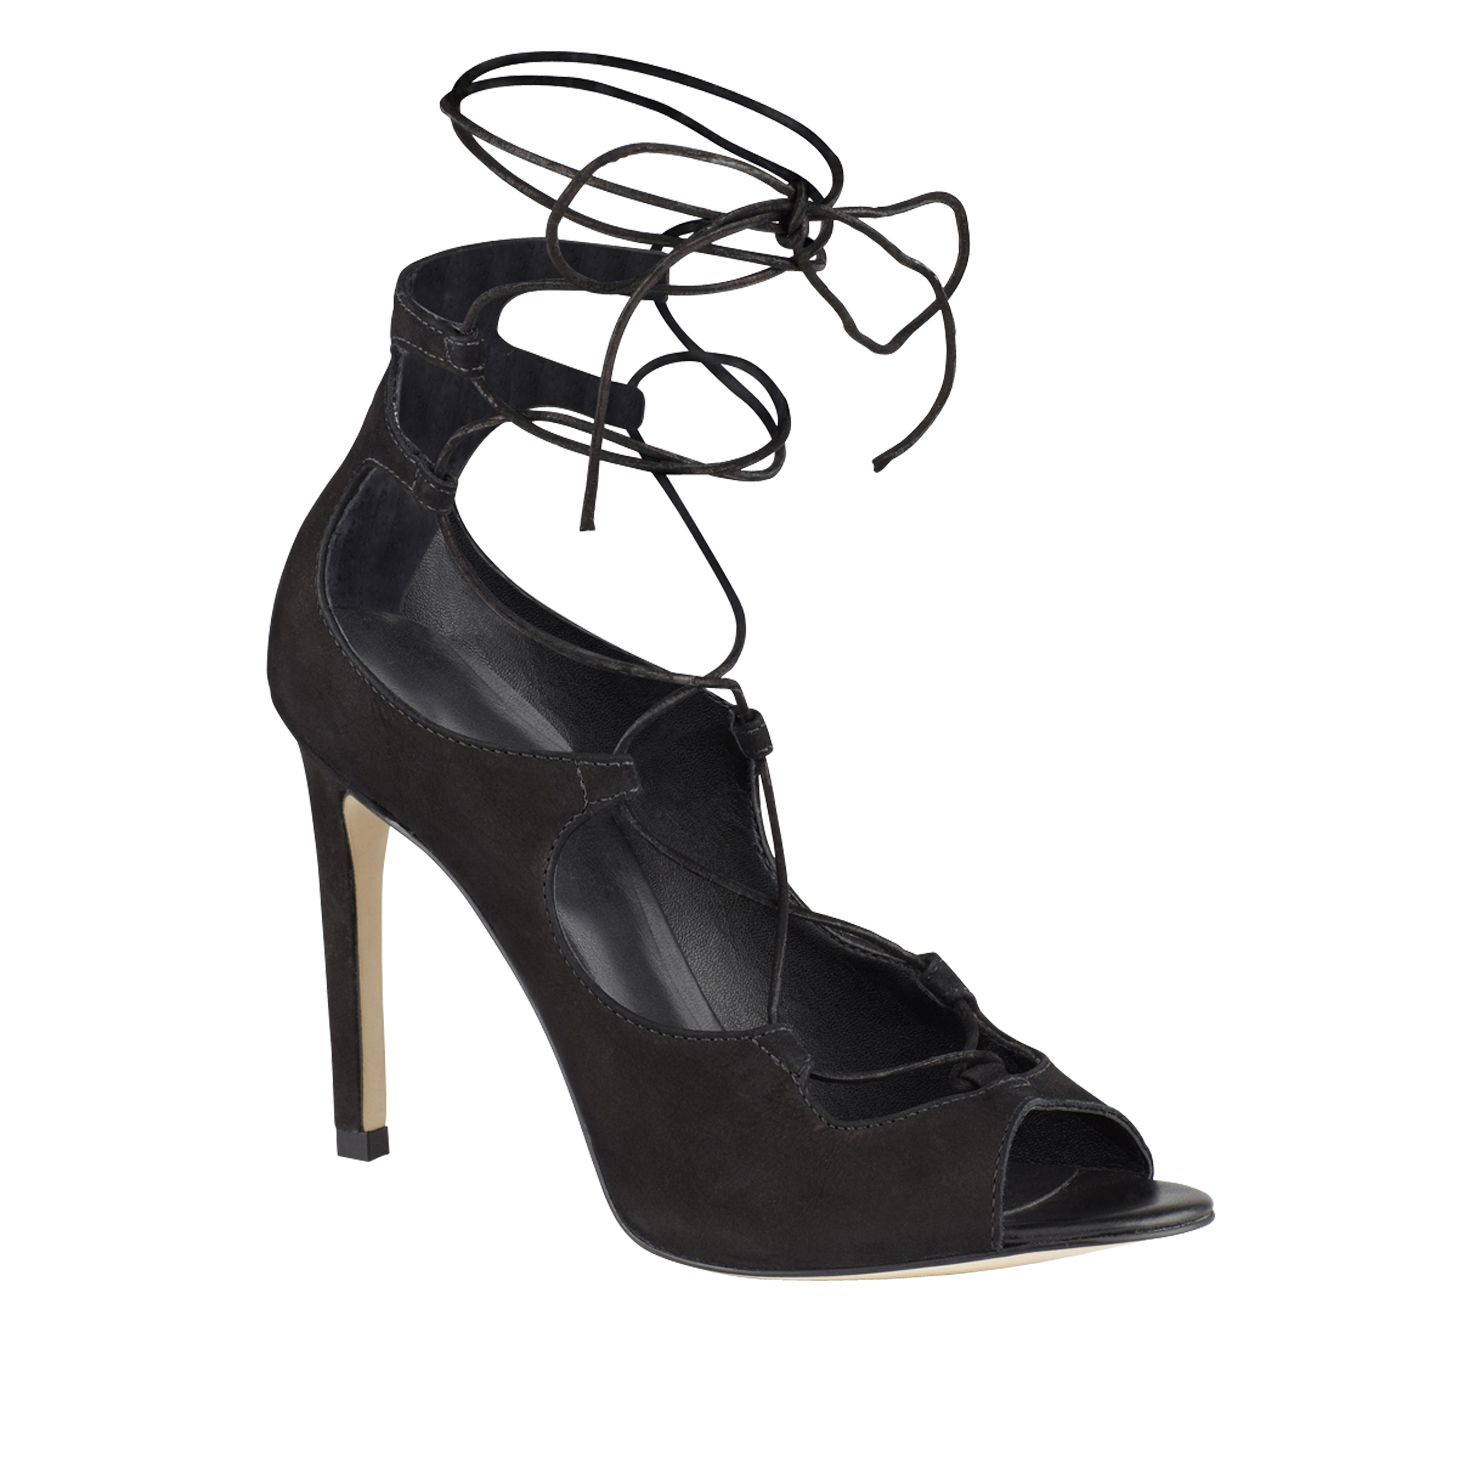 Cezarine lace-up court sandals